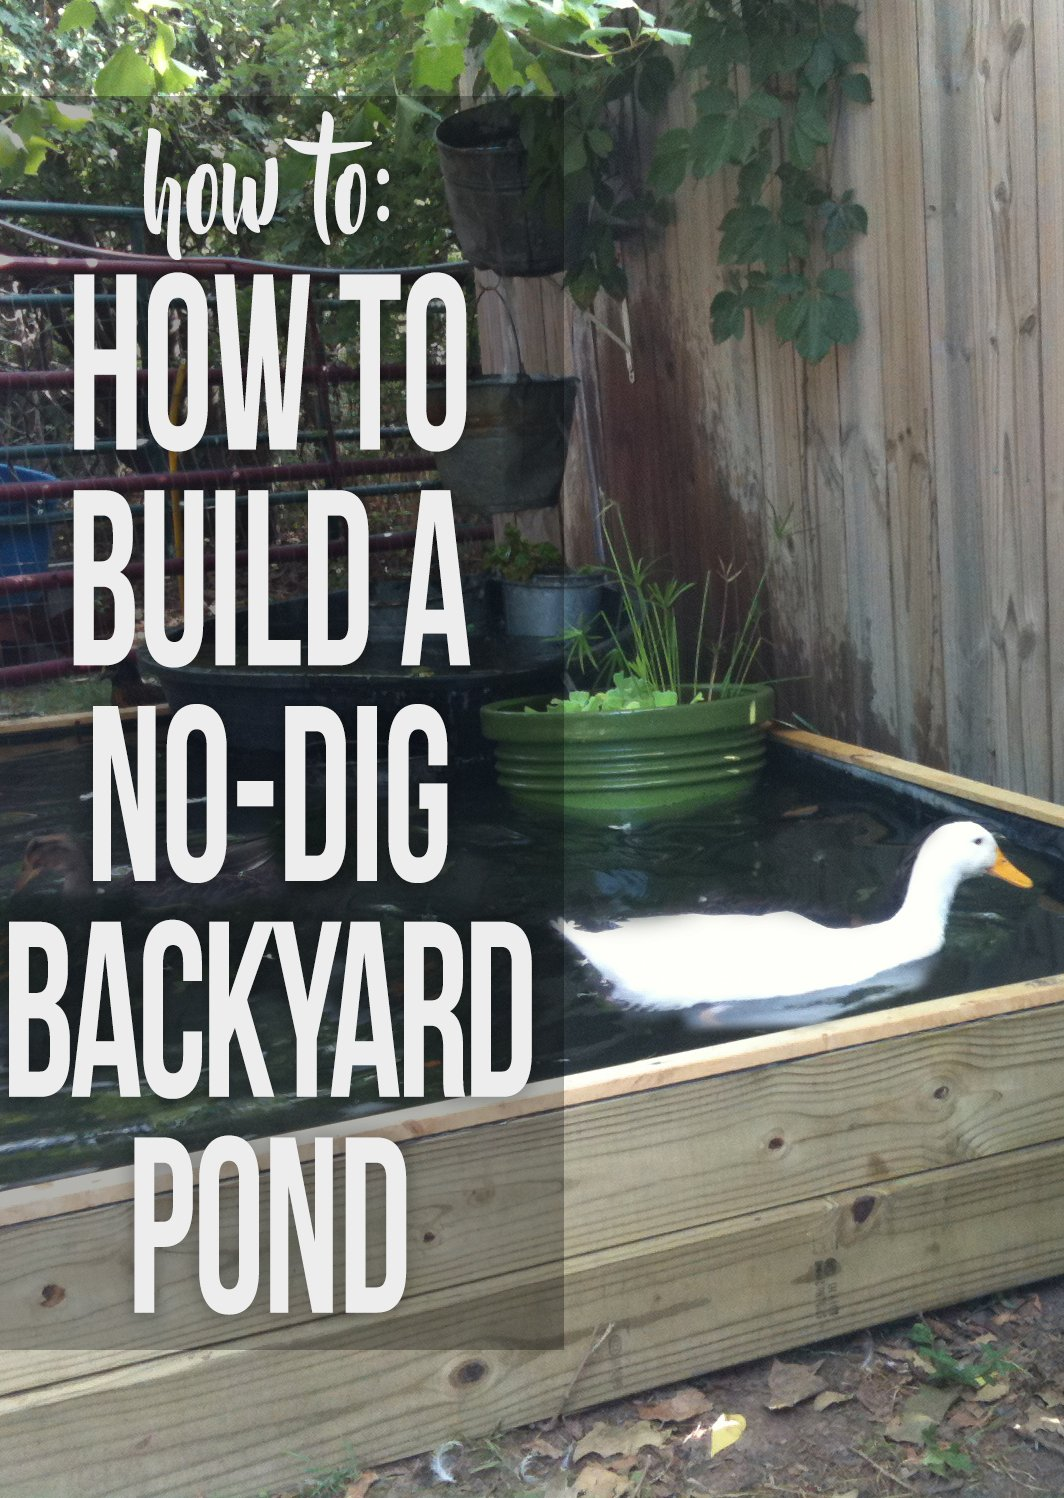 How to build a no dig backyard pond for under 70 hawk hill instructions for building a backyard pond with no kit and no digging required solutioingenieria Choice Image